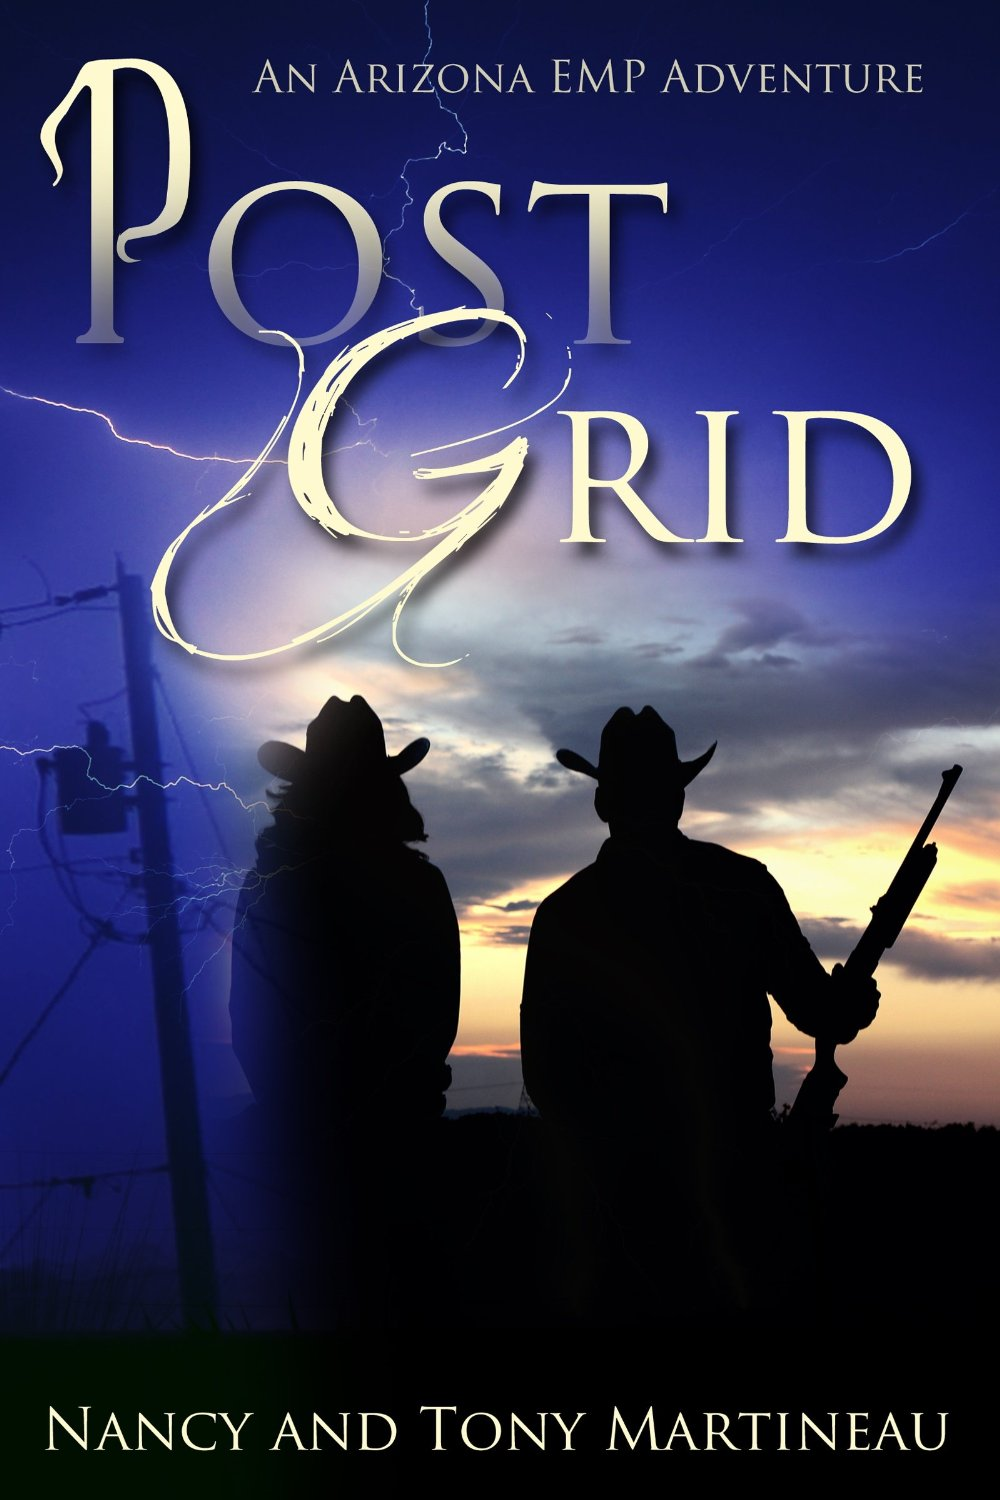 Post Grid Novel by Nancy and Tony Martineau | Book Review